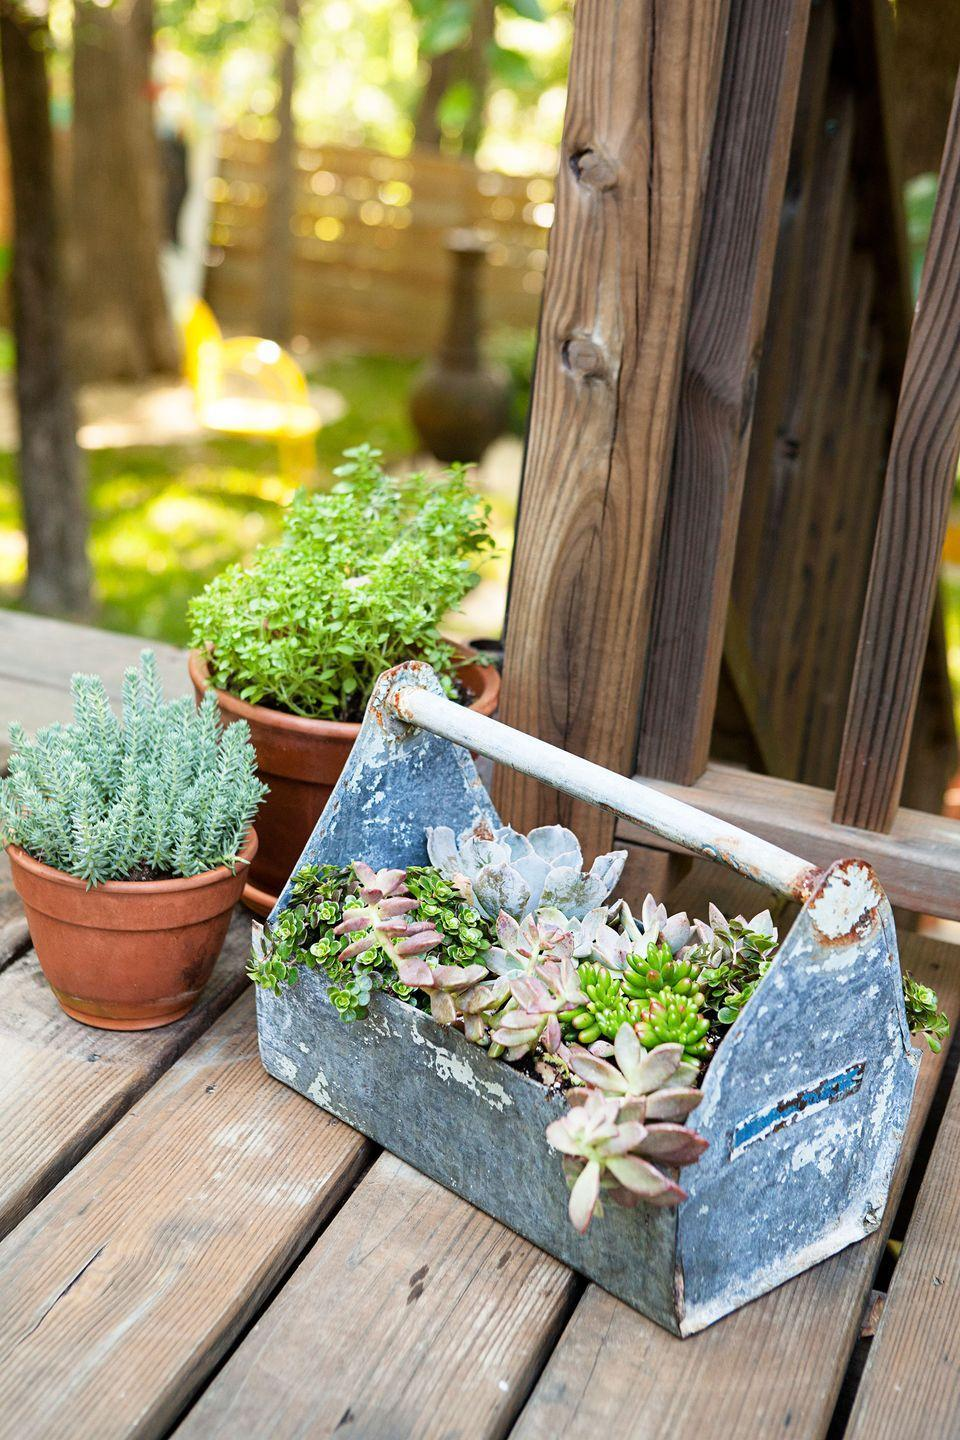 """<p>Just about anything can hold plants if it's got sufficient drainage (i.e., a few holes drilled in the bottom). The handle on this <a href=""""https://www.goodhousekeeping.com/home/gardening/advice/g1007/backyard-decorating/"""" rel=""""nofollow noopener"""" target=""""_blank"""" data-ylk=""""slk:vintage toolbox"""" class=""""link rapid-noclick-resp"""">vintage toolbox</a> makes relocating succulents to a shadier spot a snap.</p>"""